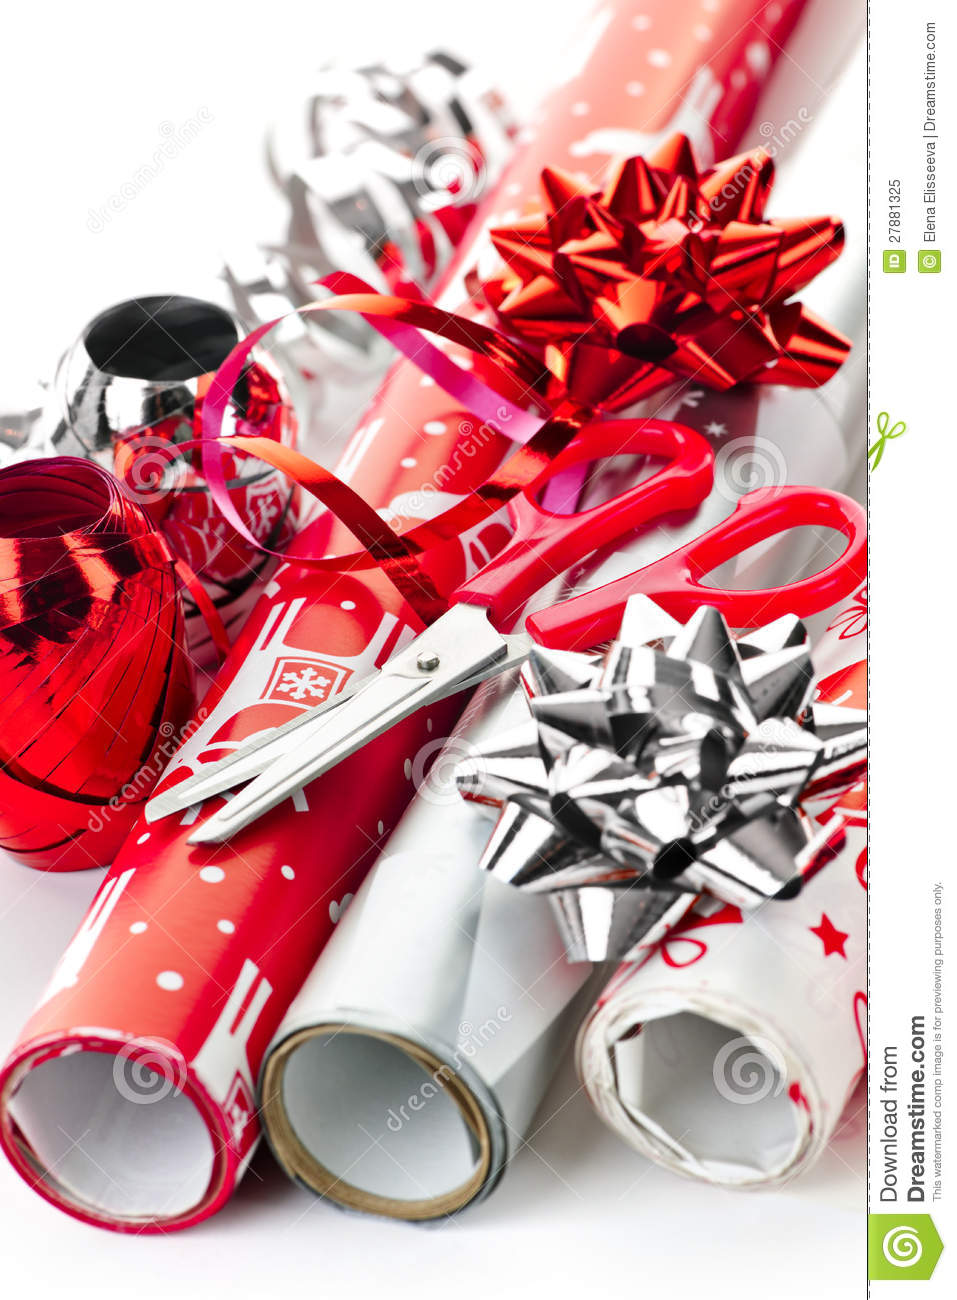 Christmas Wrapping Paper Rolls Stock Image.